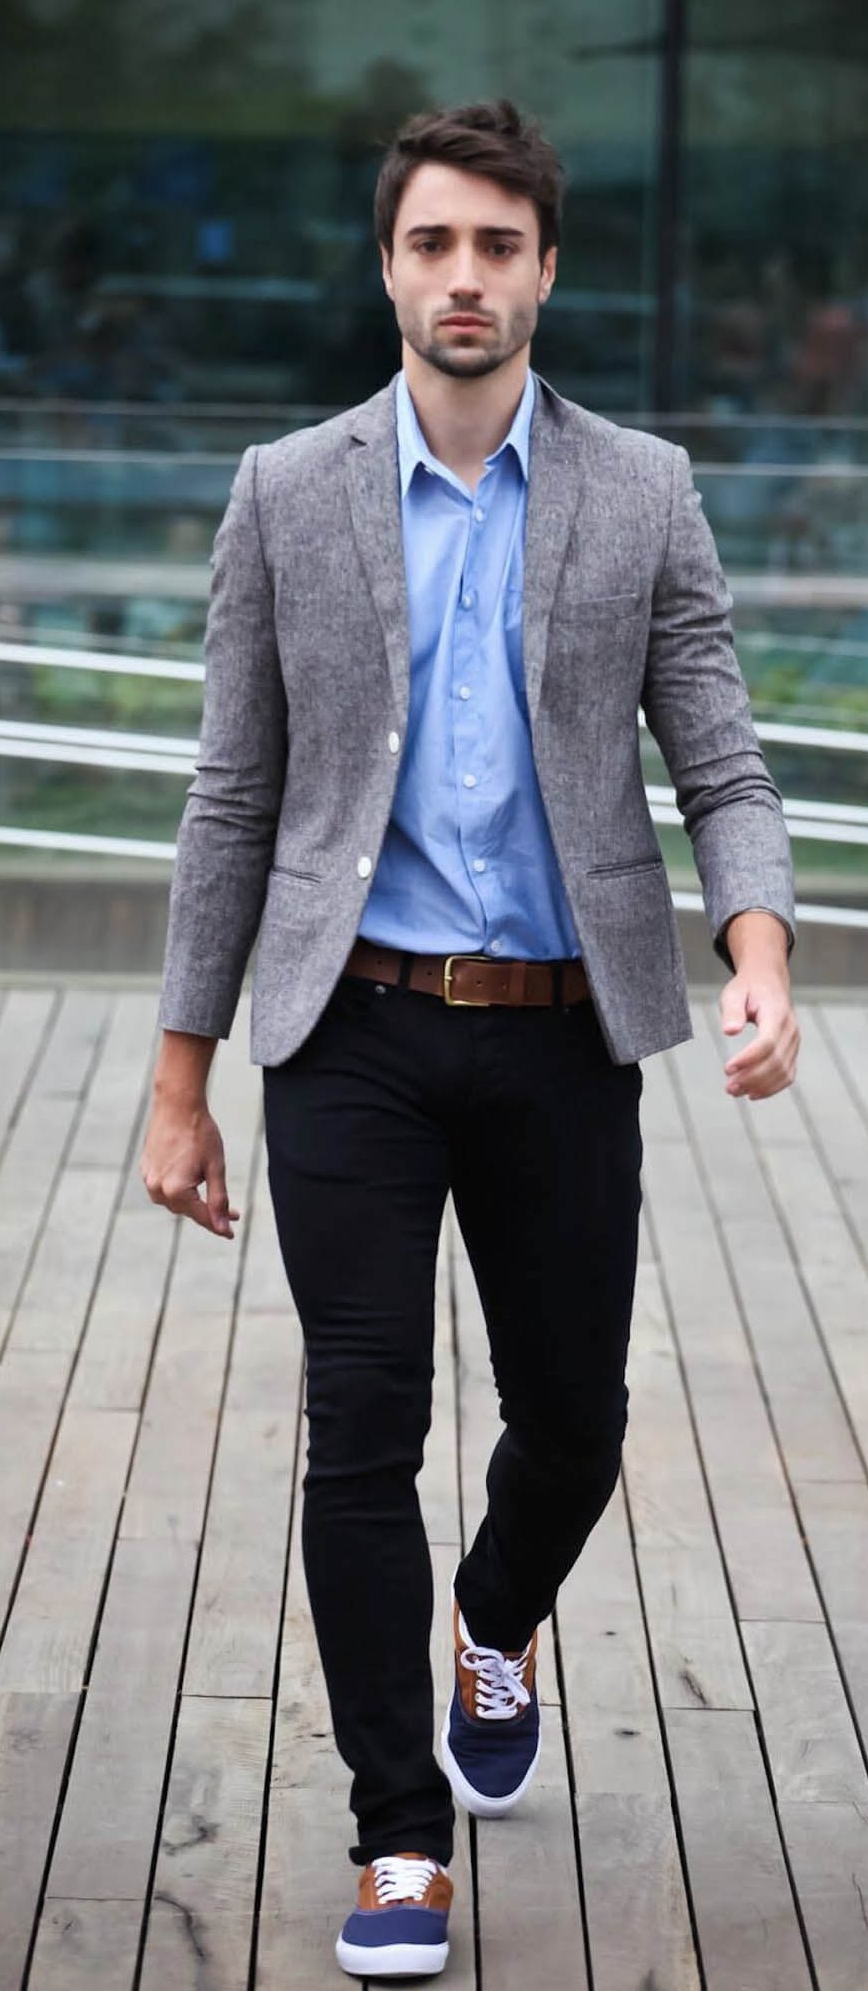 Chinos-are-acceptable-making-this-a-great-business-casual-outfit.jpg